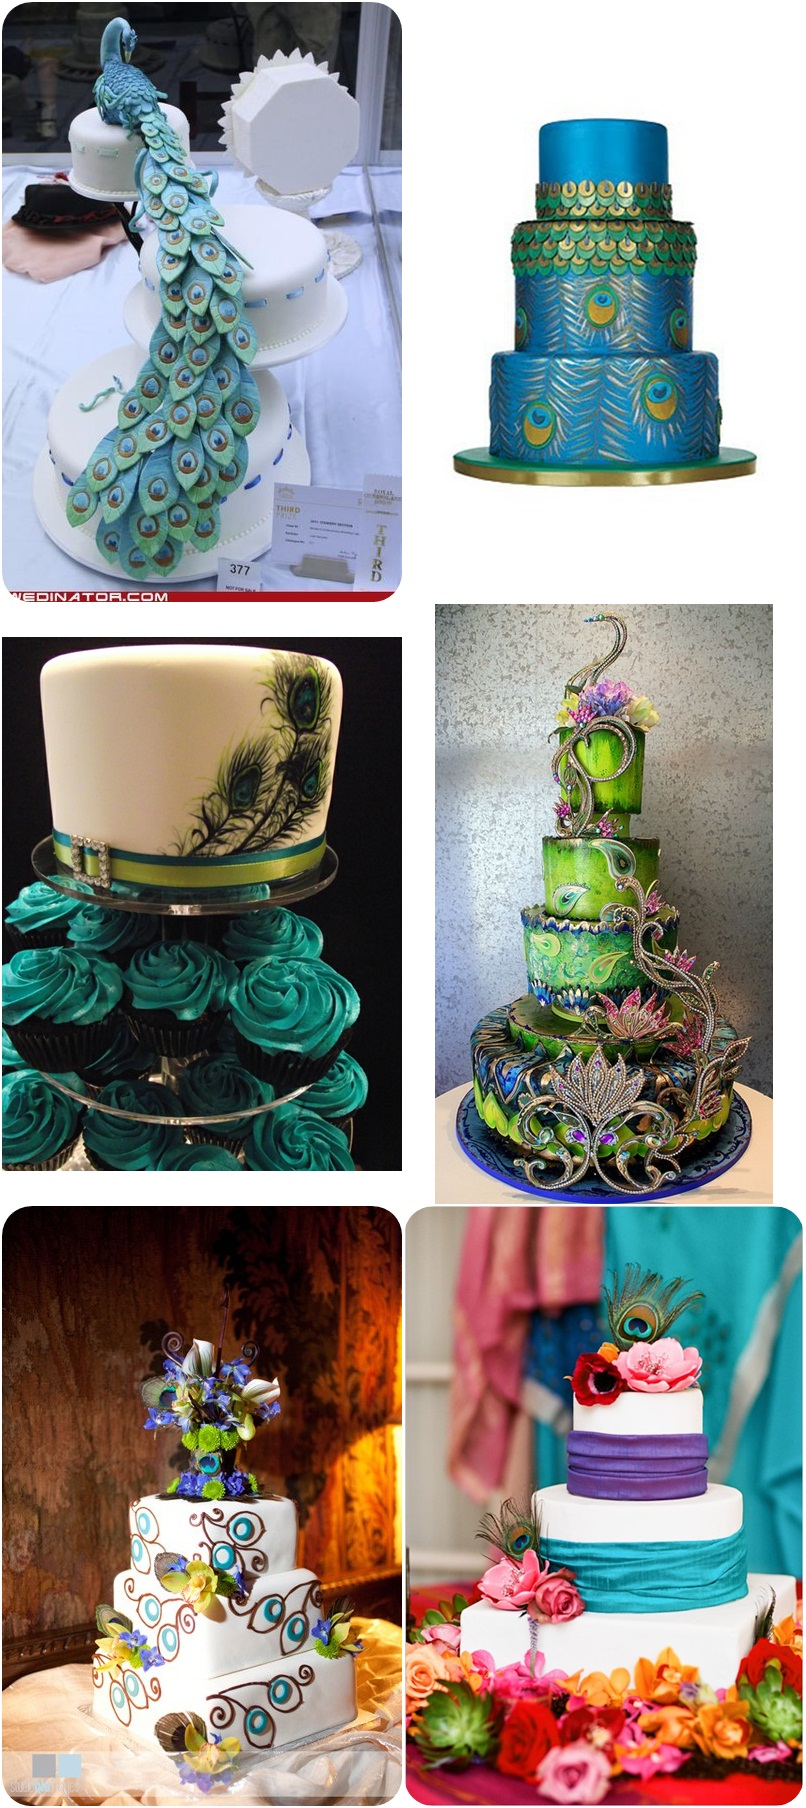 Peacock Wedding Ideas and Inspirations   Budget Brides Guide   A     peacock wedding cakes